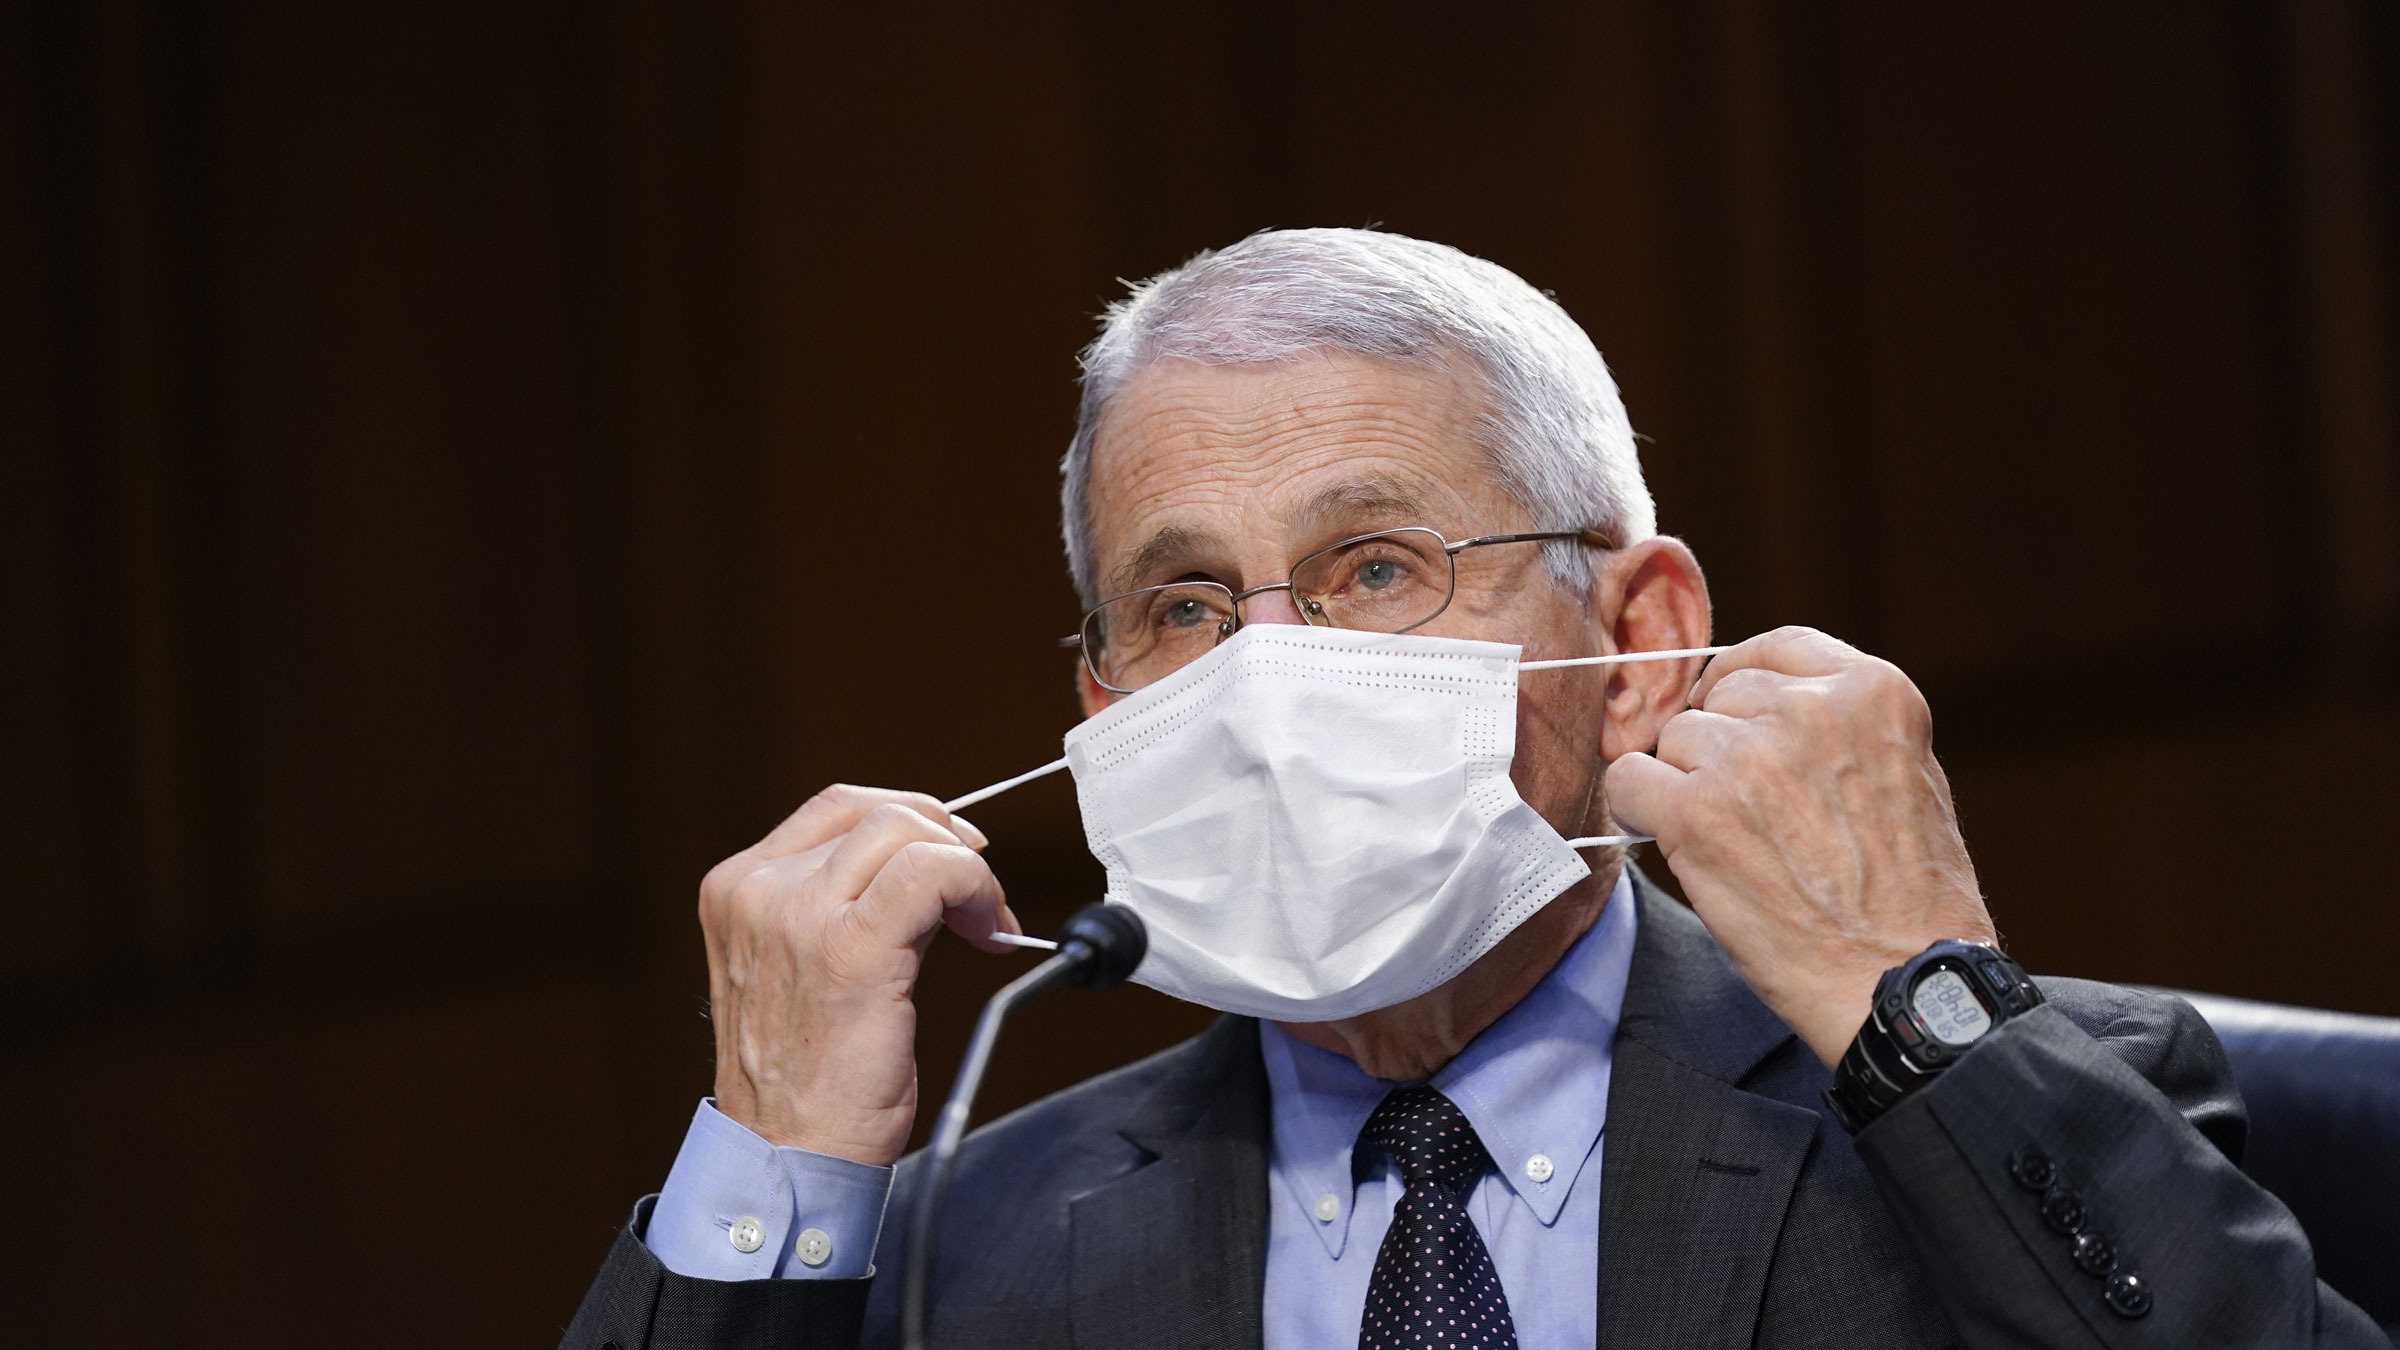 Dr. Anthony Fauci adjusts his mask during a Senate committee hearing in March.